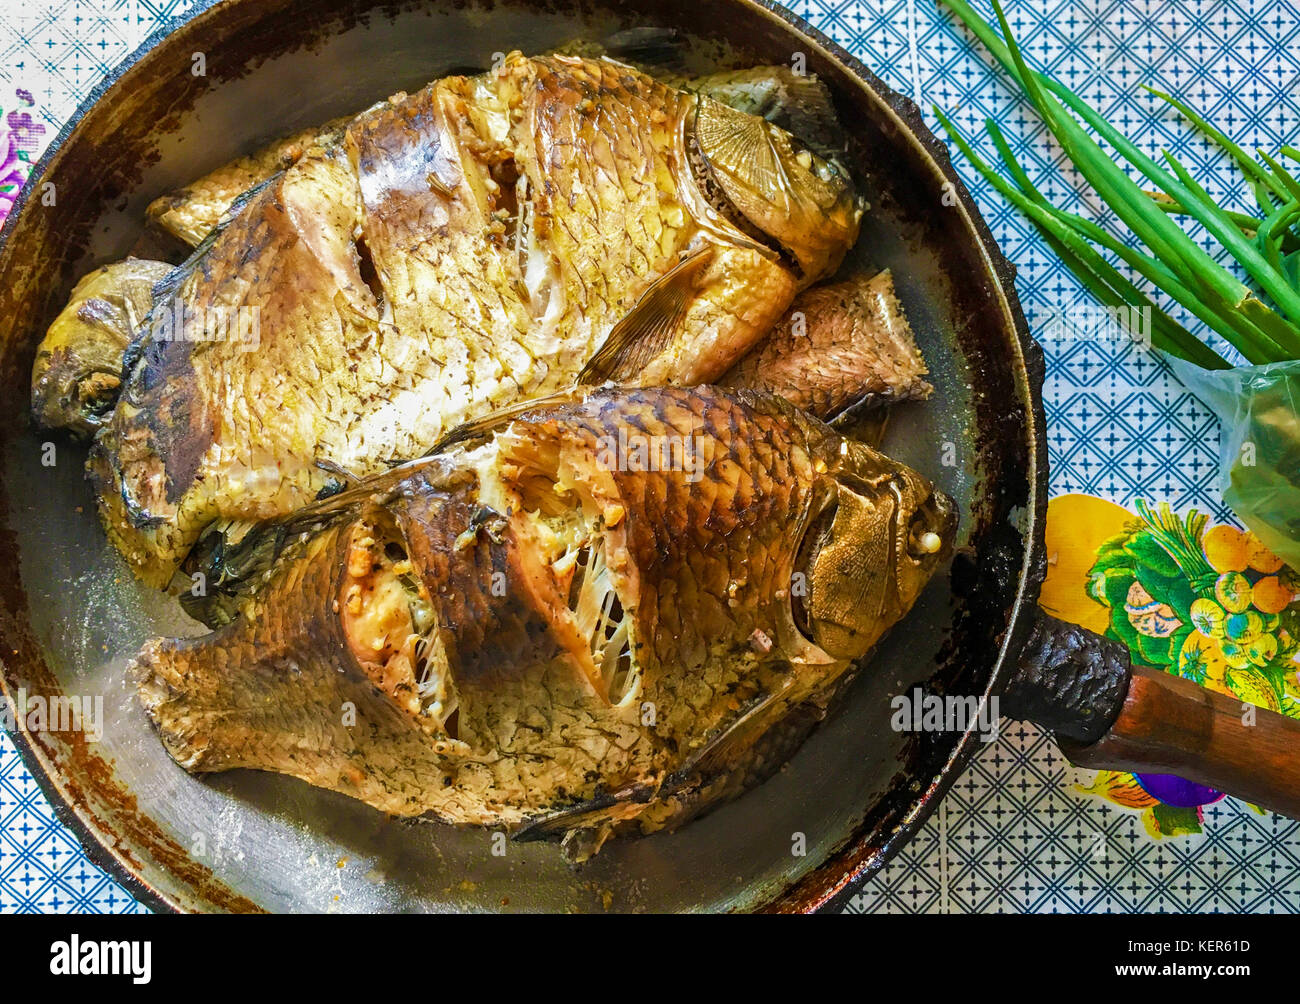 How to cook a crucian 35